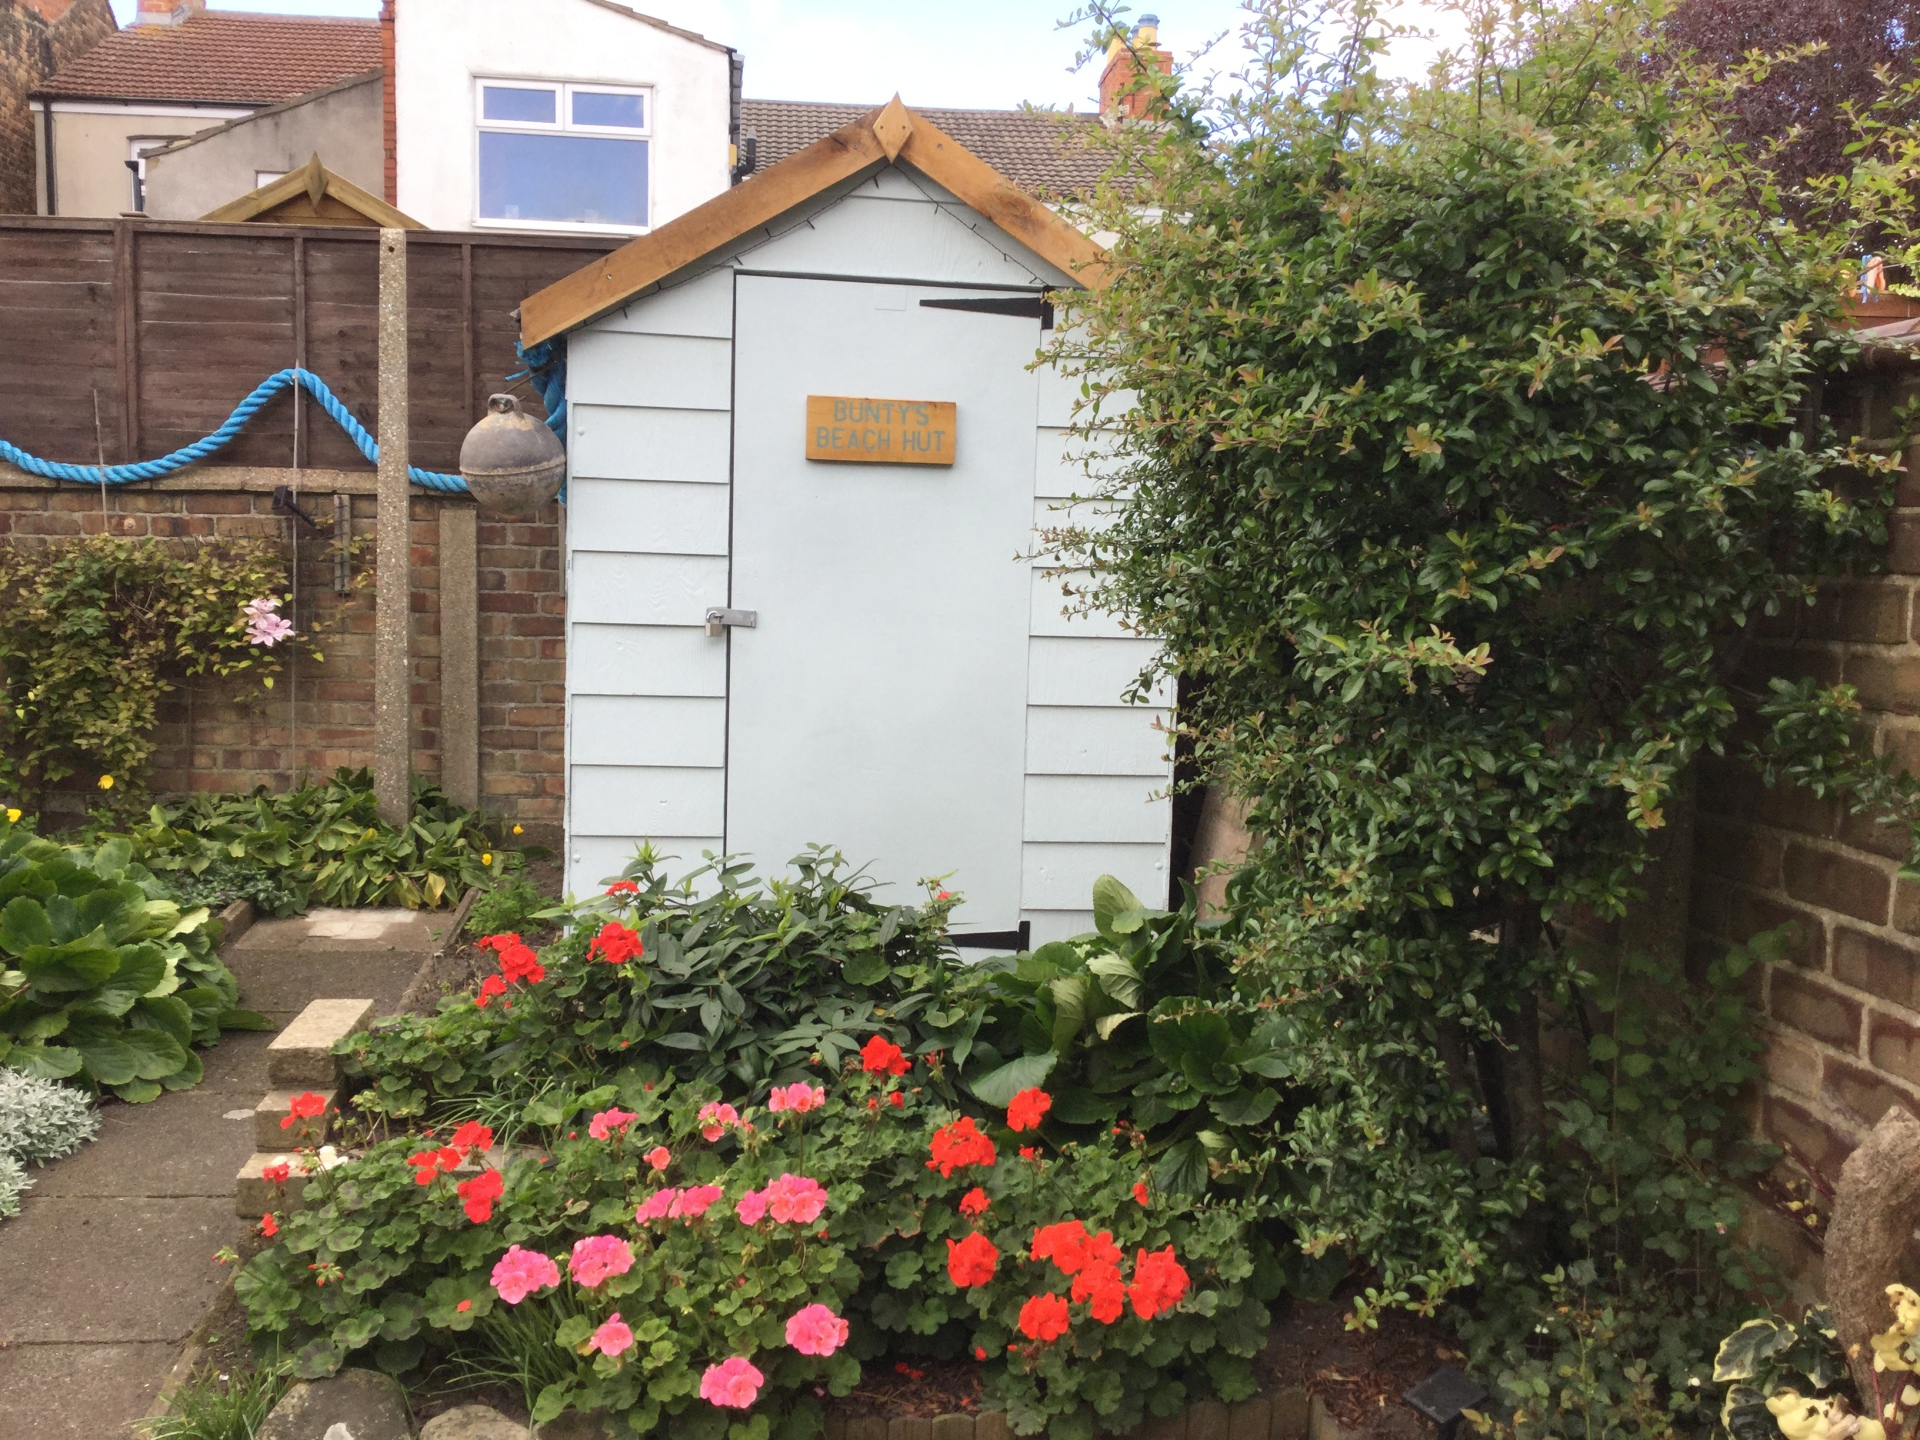 Bunty's Shed